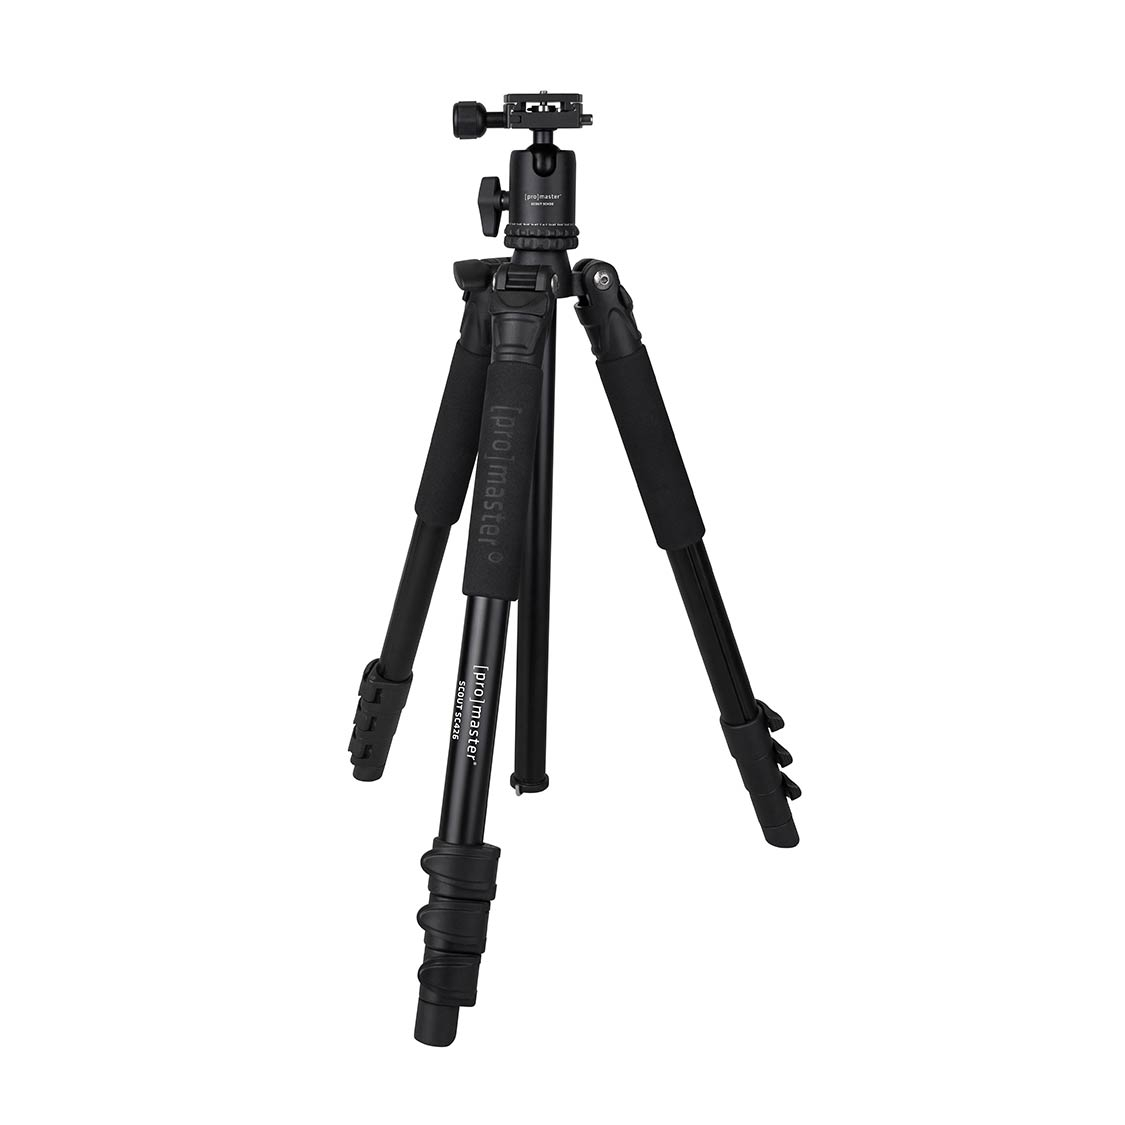 Promaster Scout SC426K Tripod with Ball Head